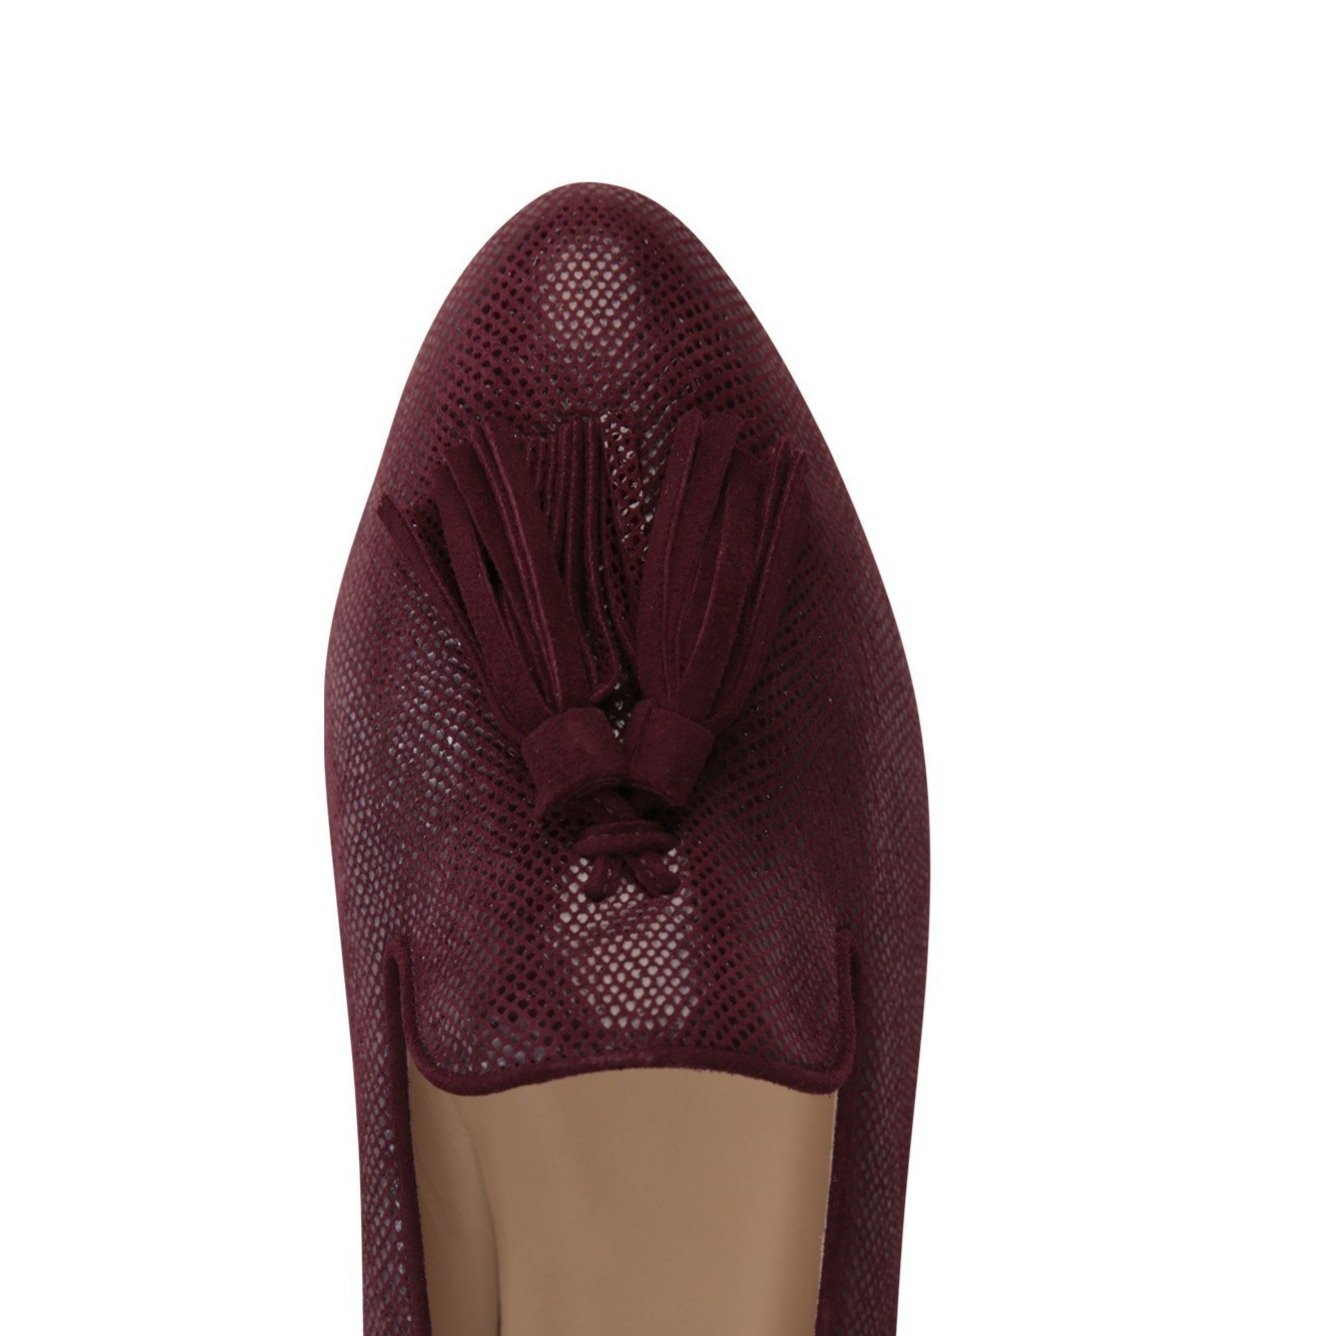 PARMA - Karung Garnet + Velukid, VIAJIYU - Women's Hand Made Sustainable Luxury Shoes. Made in Italy. Made to Order.